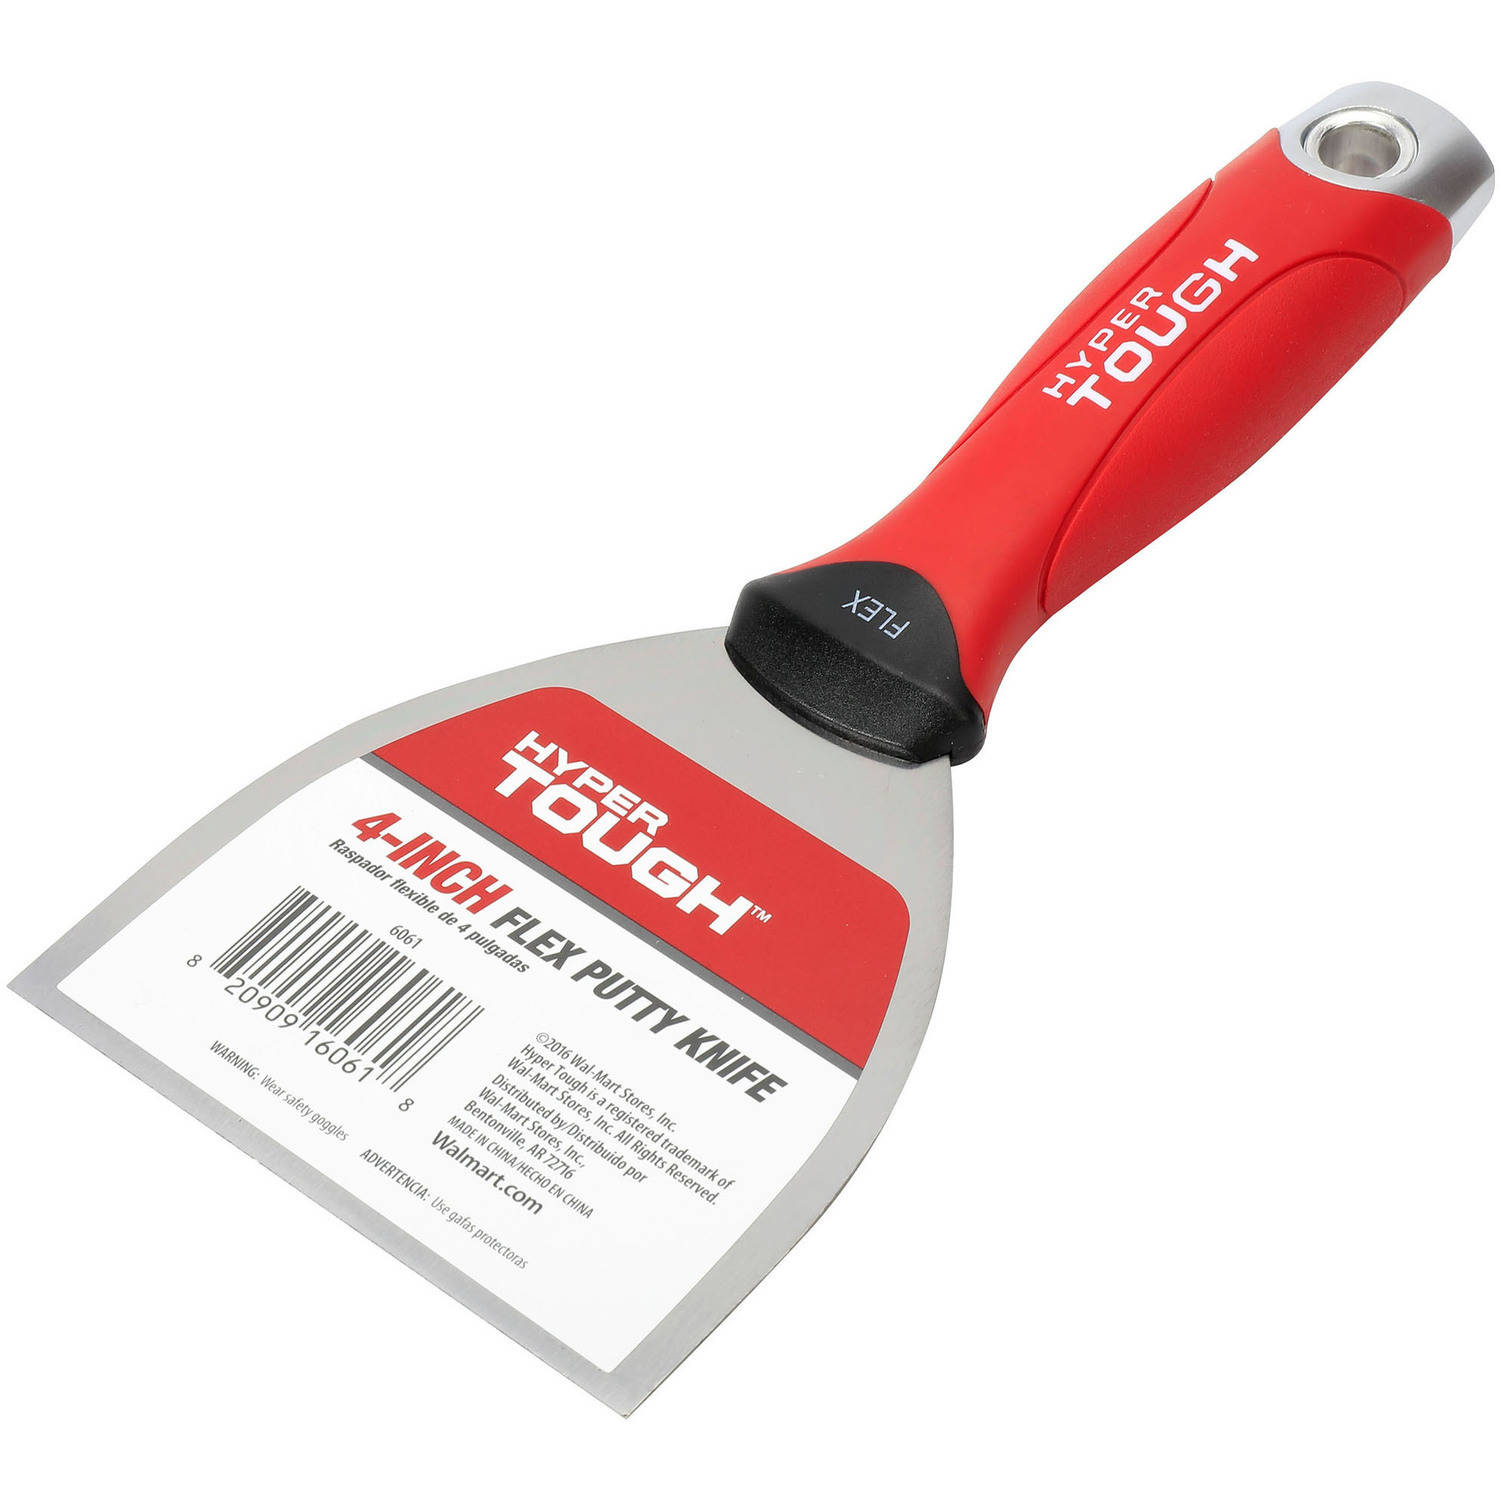 "Hyper Tough Soft Grip 4"" Flexible Putty Knife"